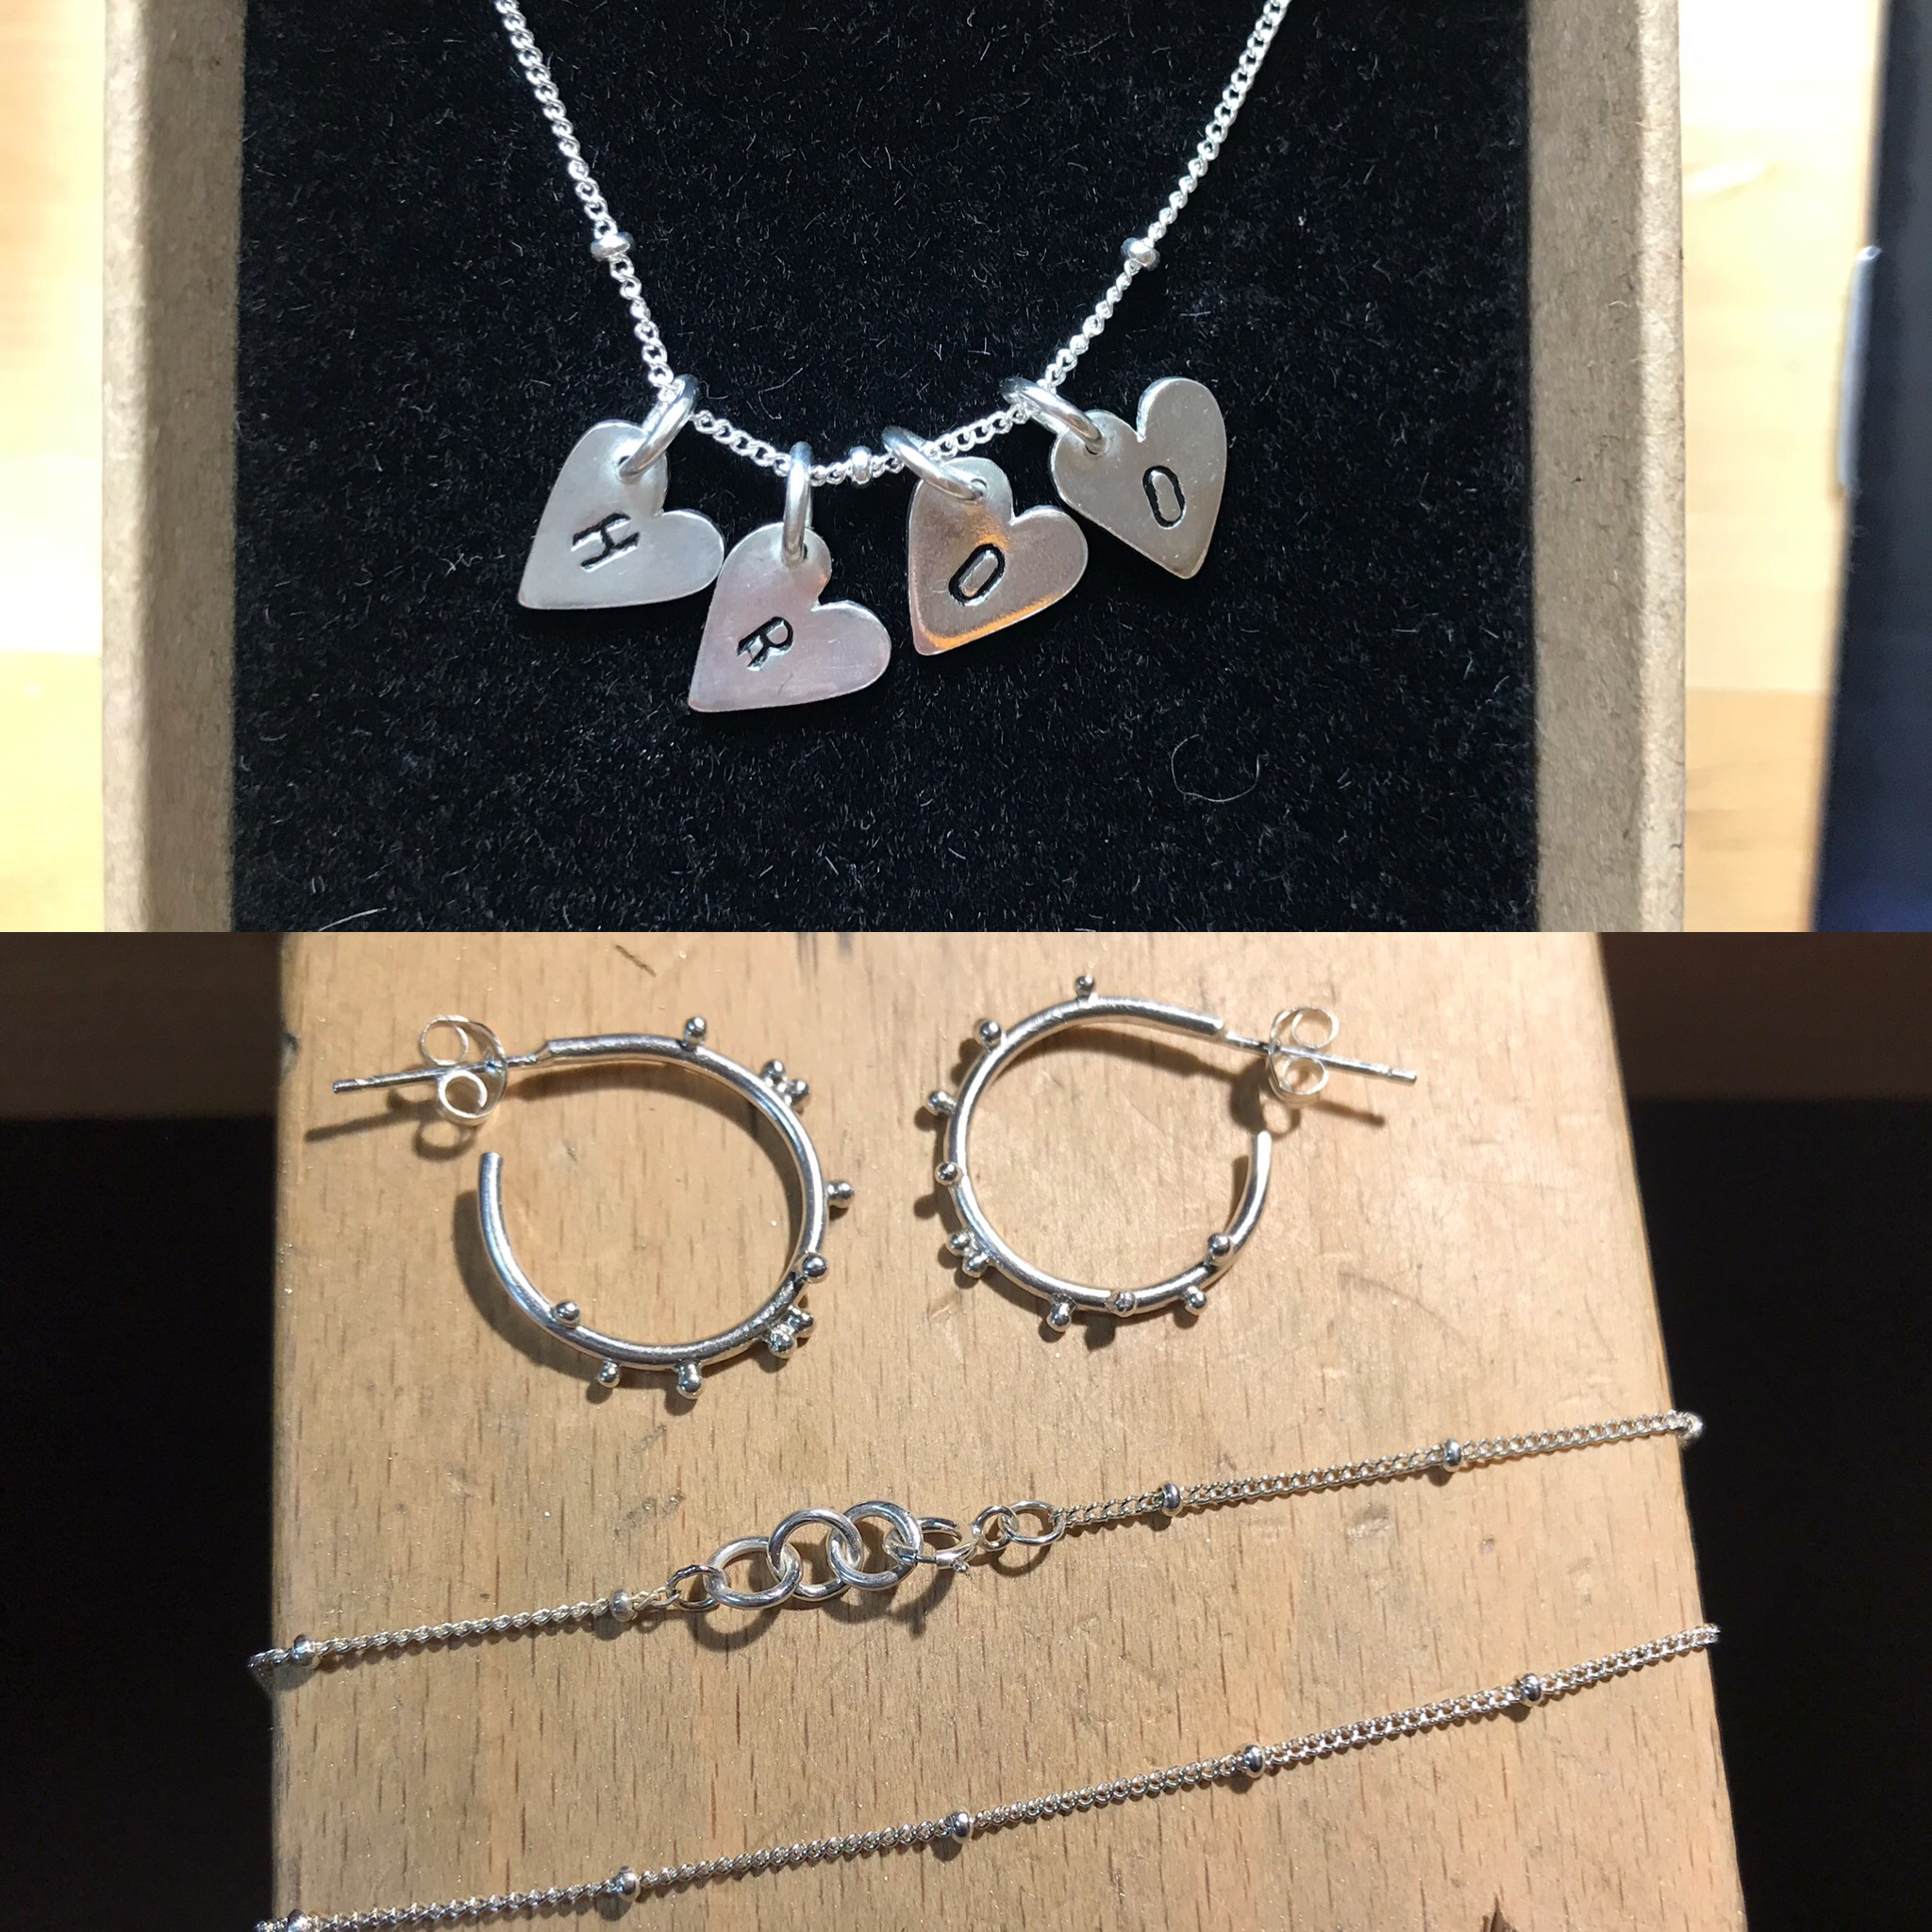 Amazing xx so happy with my necklace and have purchased earrings & anklet to match 😍 xx thank you so much Lucy for my wonderful jewellery xx - -Hayley Harris.